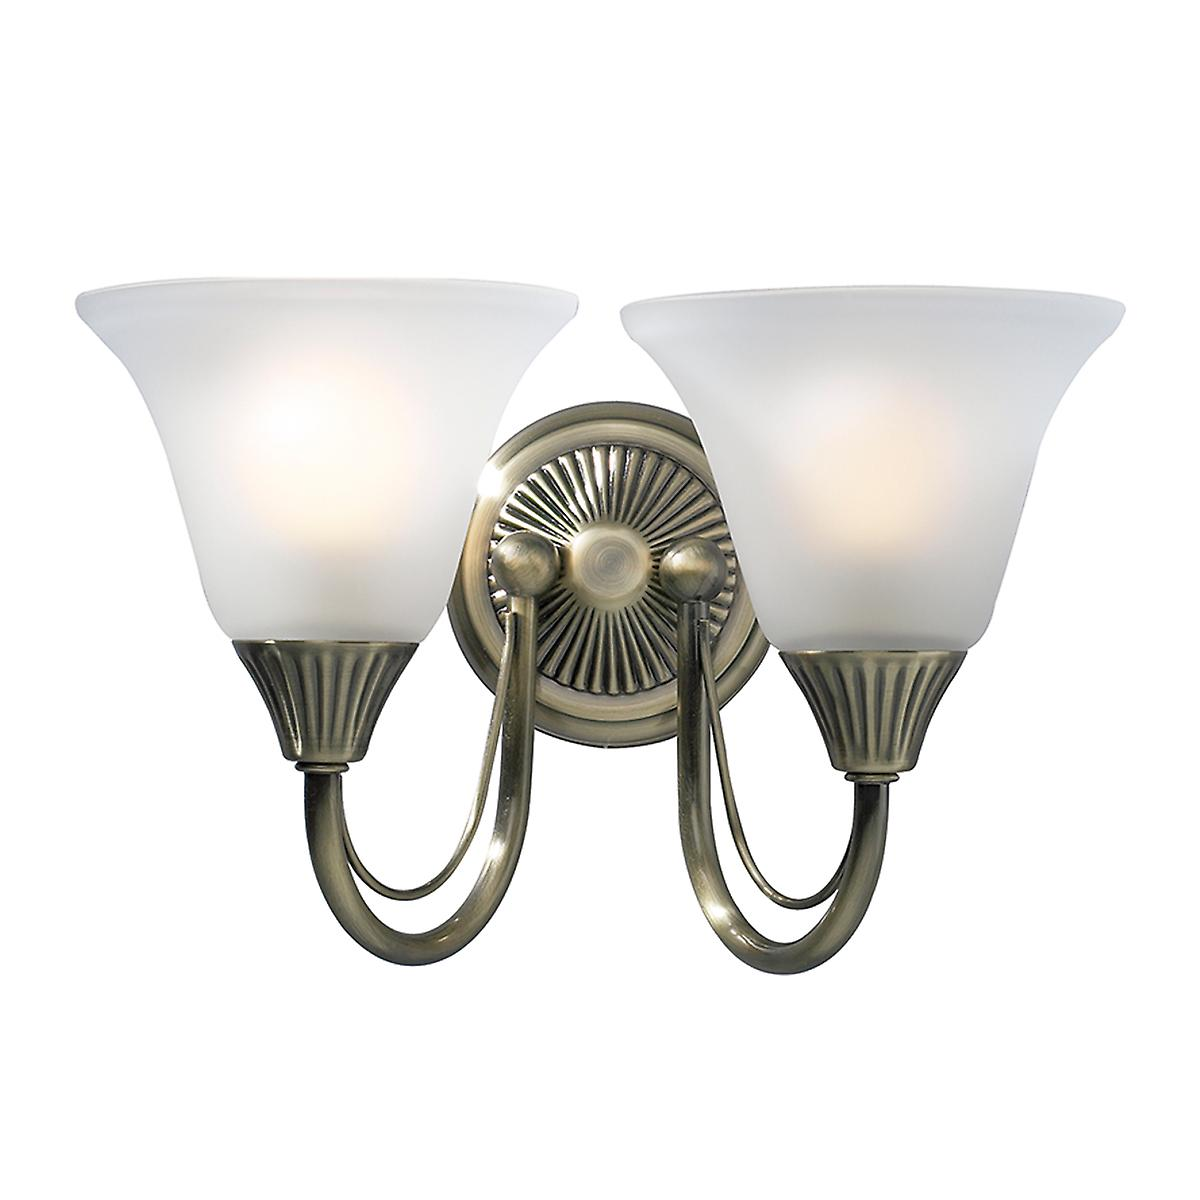 Dar BOS09 Boston Traditional Switched Double Wall Light With Frosted Glass